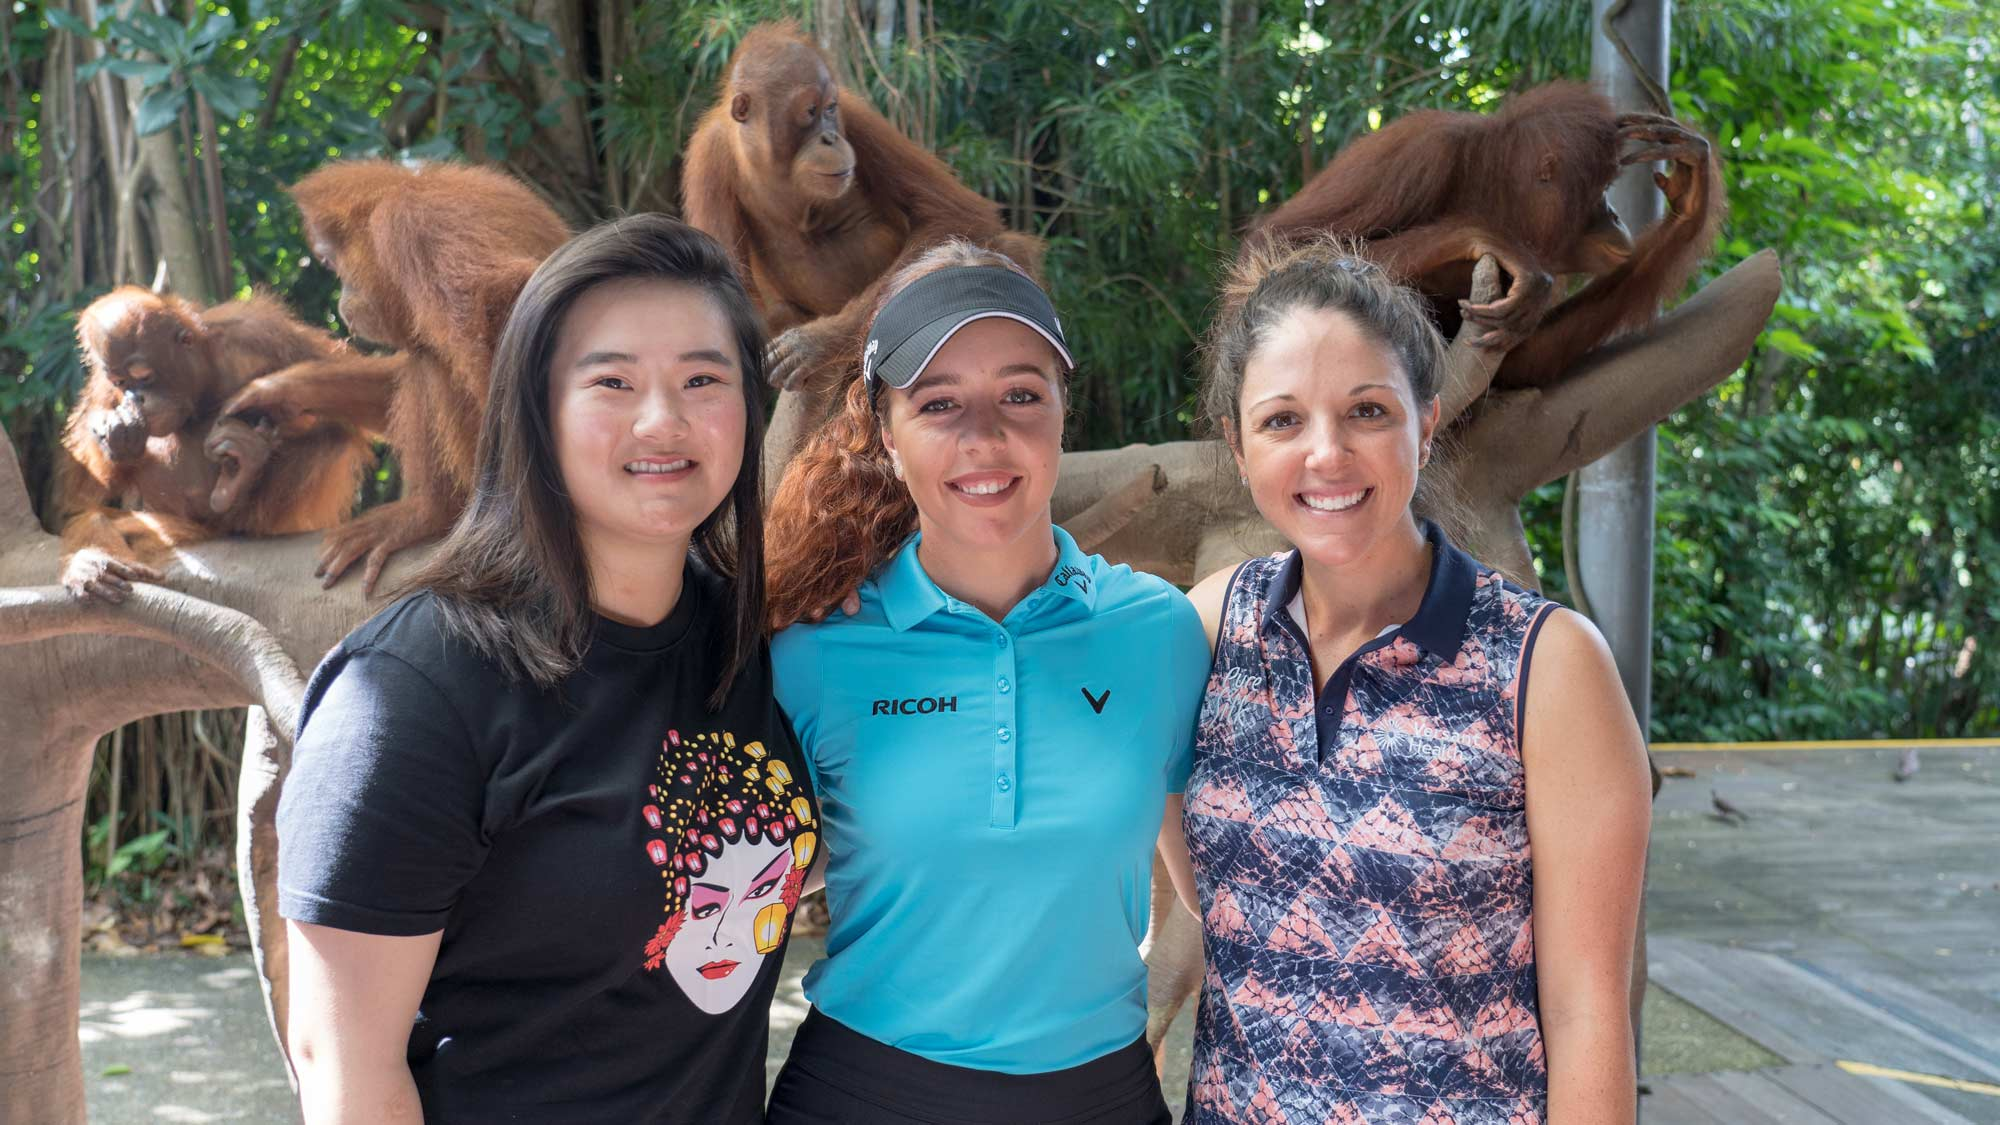 Angel Yin, Georgia Hall and Emma Talley visit with orangutans at the zoo after their opening practice round February 26th, 2019.